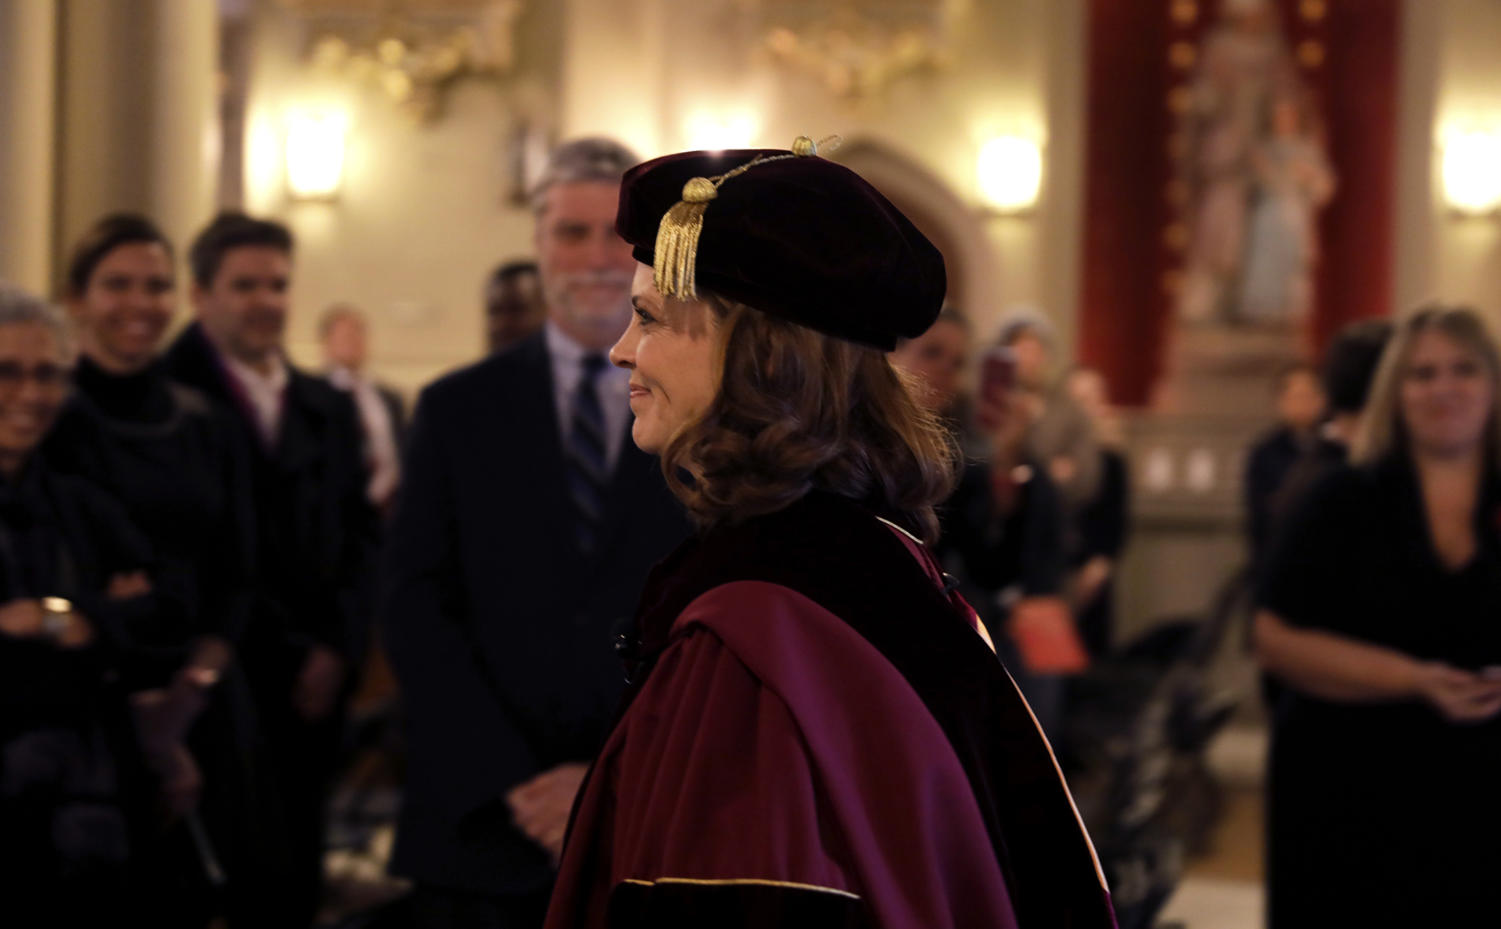 President Tania Tetlow walks into Holy Name of Jesus church dressed in academic regalia. Photo credit: Angelo Imbraguglio